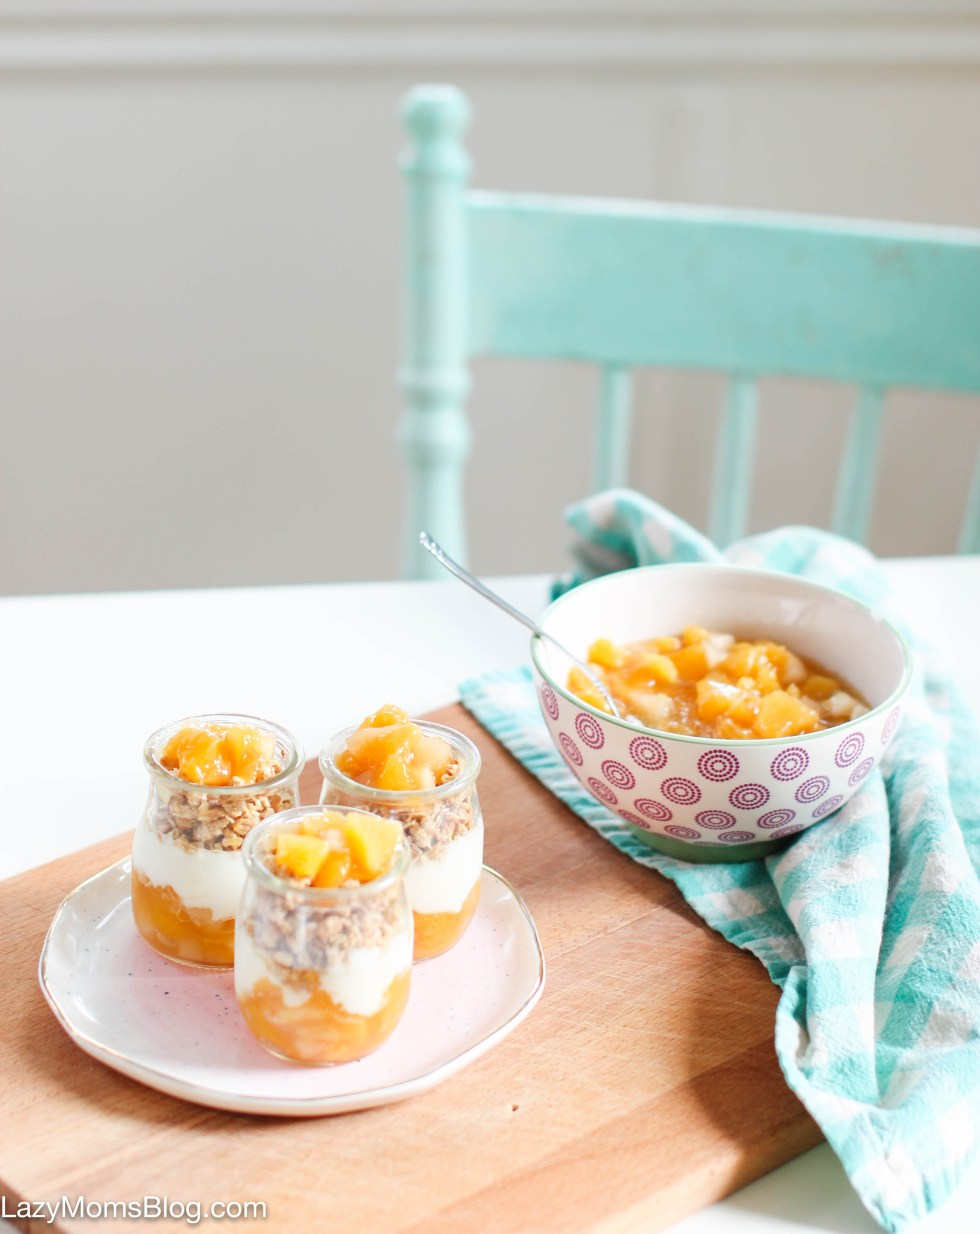 This apple & peach compote is just amazing served as a parfait and soo good on toast too! And it's so easy to make!